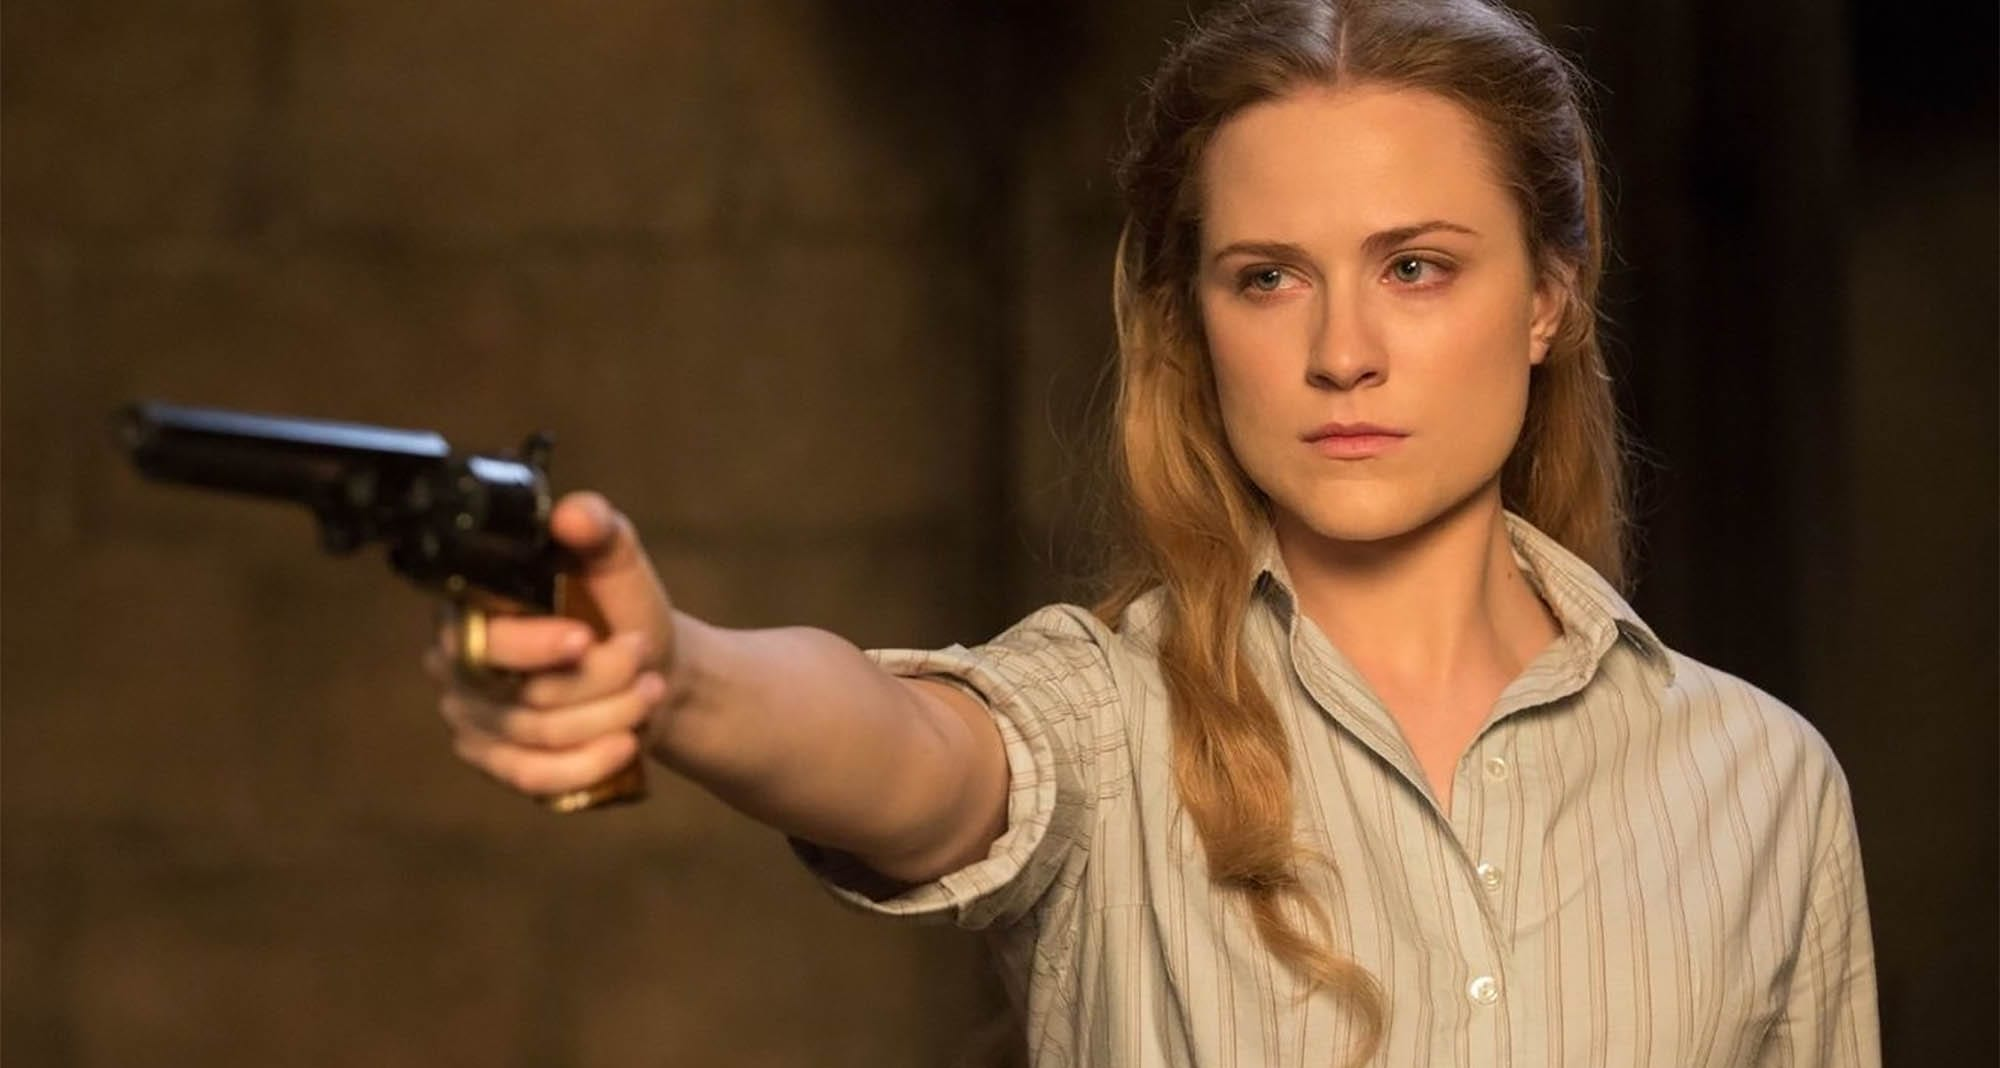 HBO's 'Westworld' is stacked with ferocious femmes. How do they hold up against other notable female gunslingers? Here's a ranking of twelve of our faves.